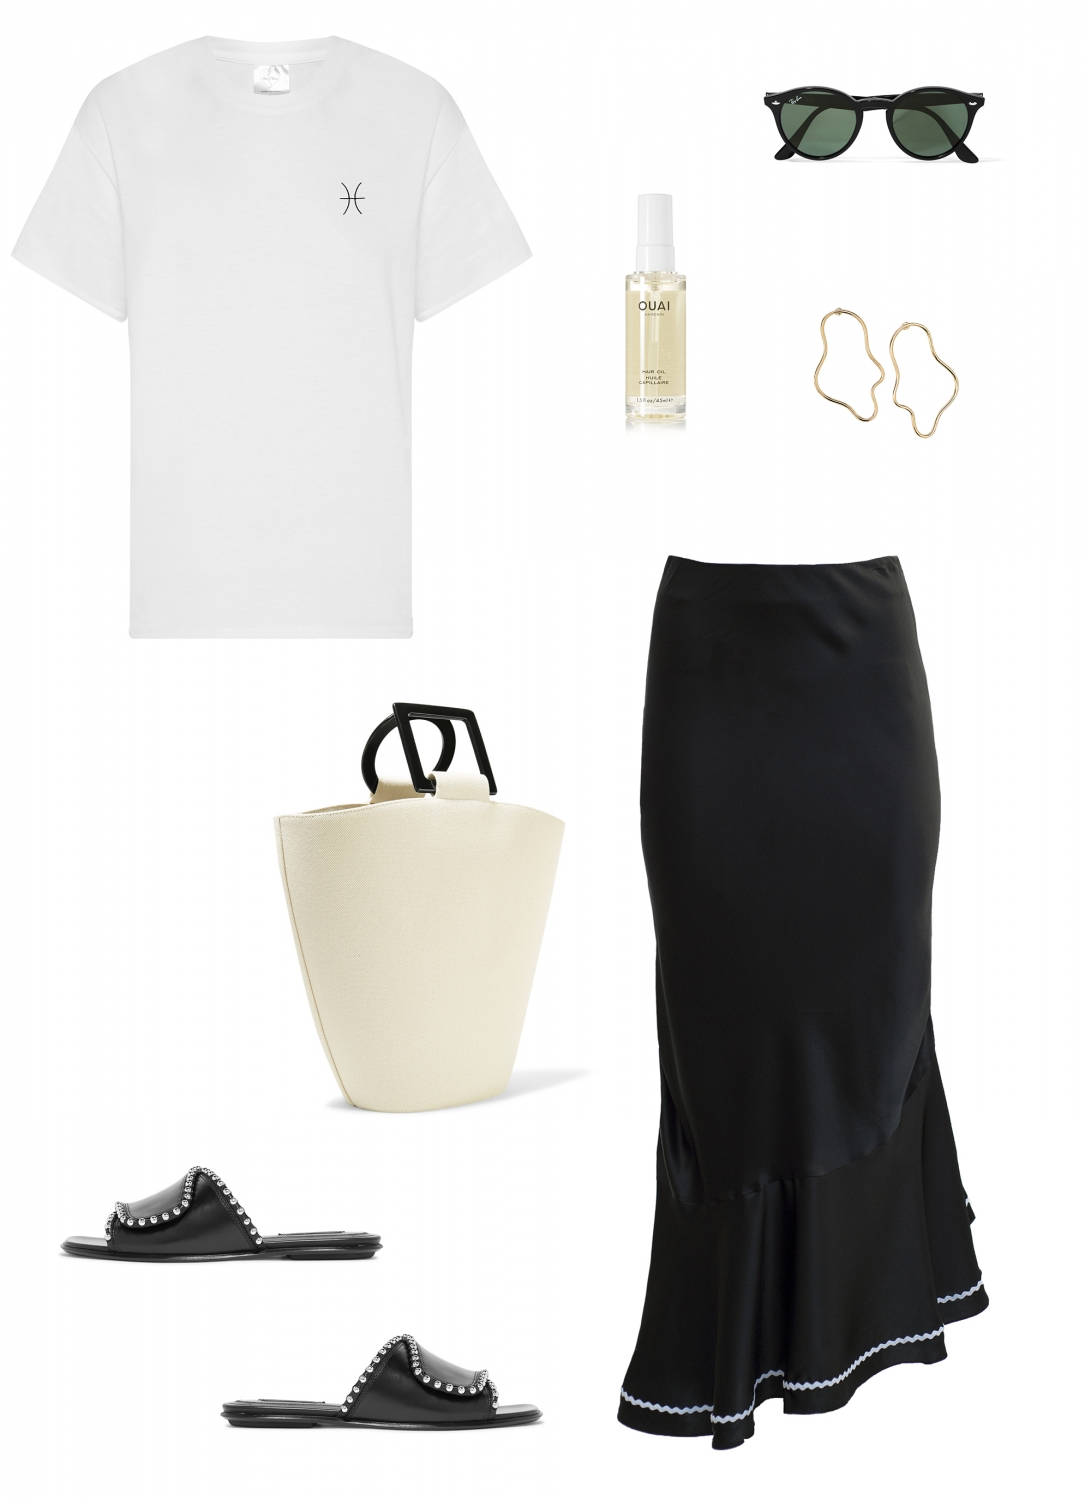 Double Trouble Gang Star Sign T-shirt | Marysia Swim silk skirt | Solid and Striped tote bag | Harper and Harley outfit inspo